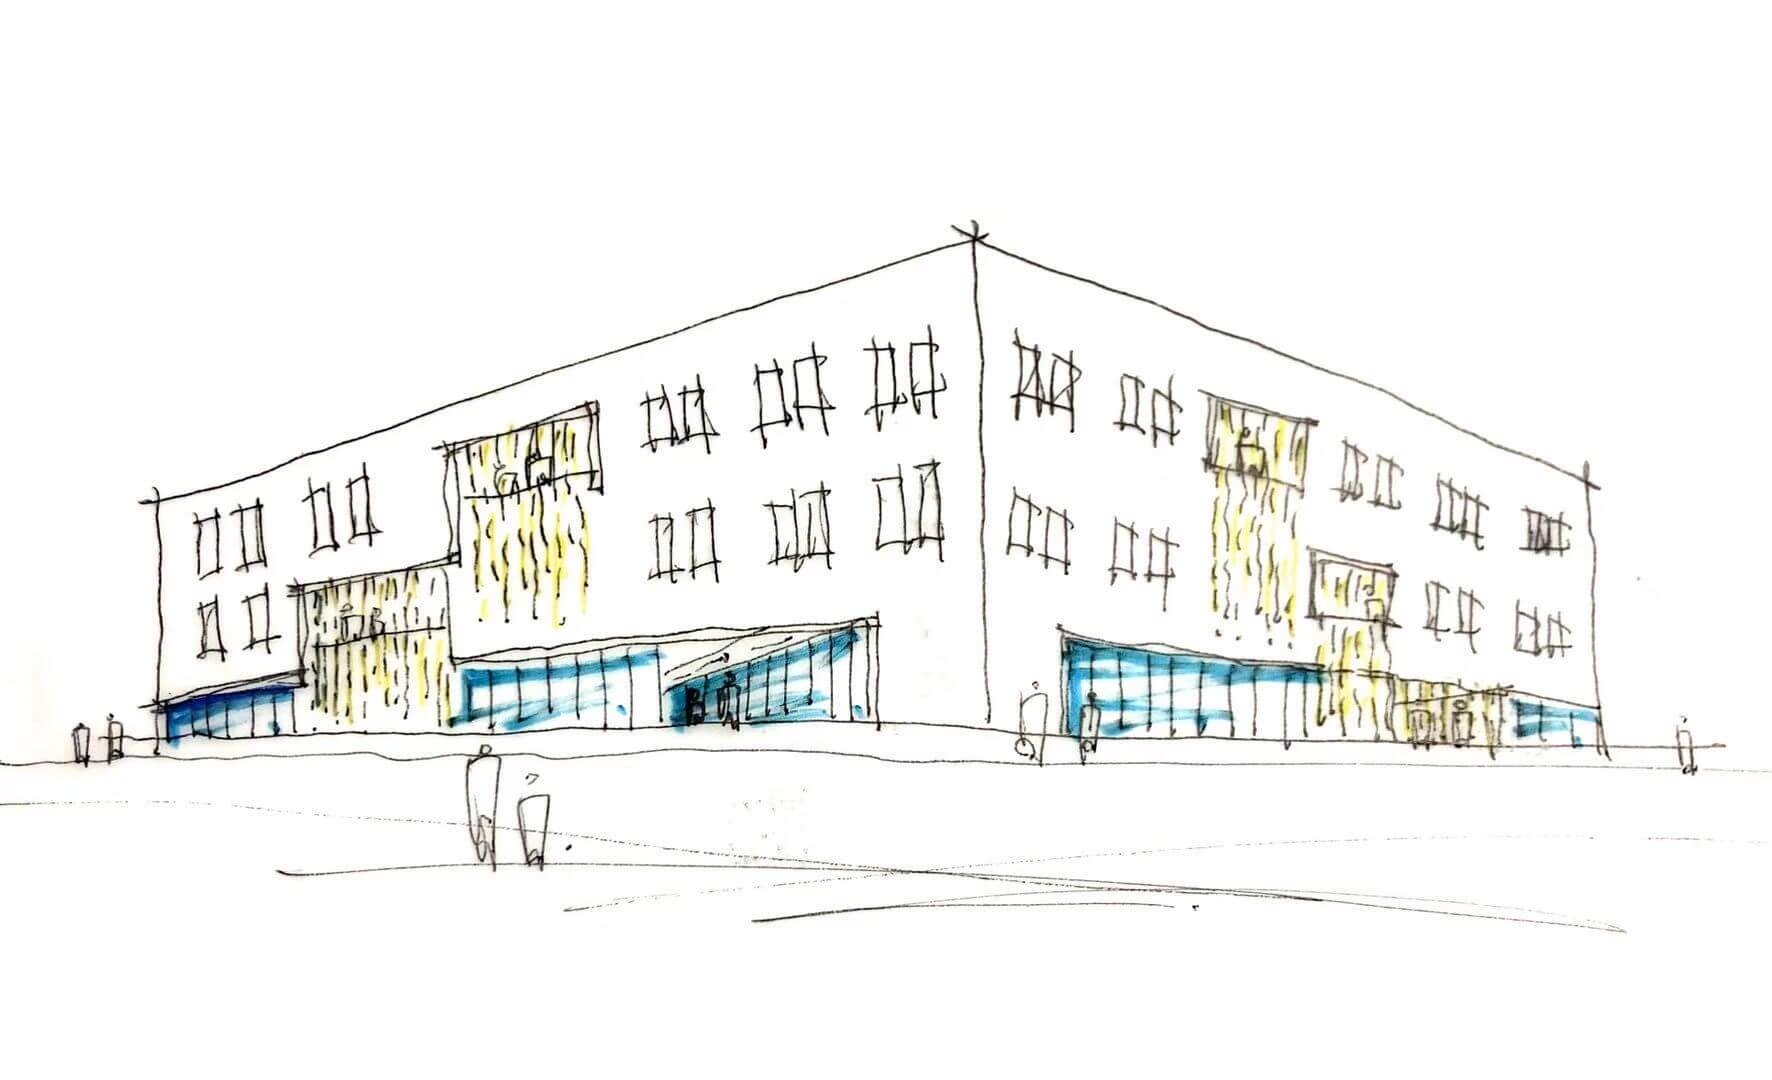 a sketch of a white three-story block building with glass externals wall on the ground floor